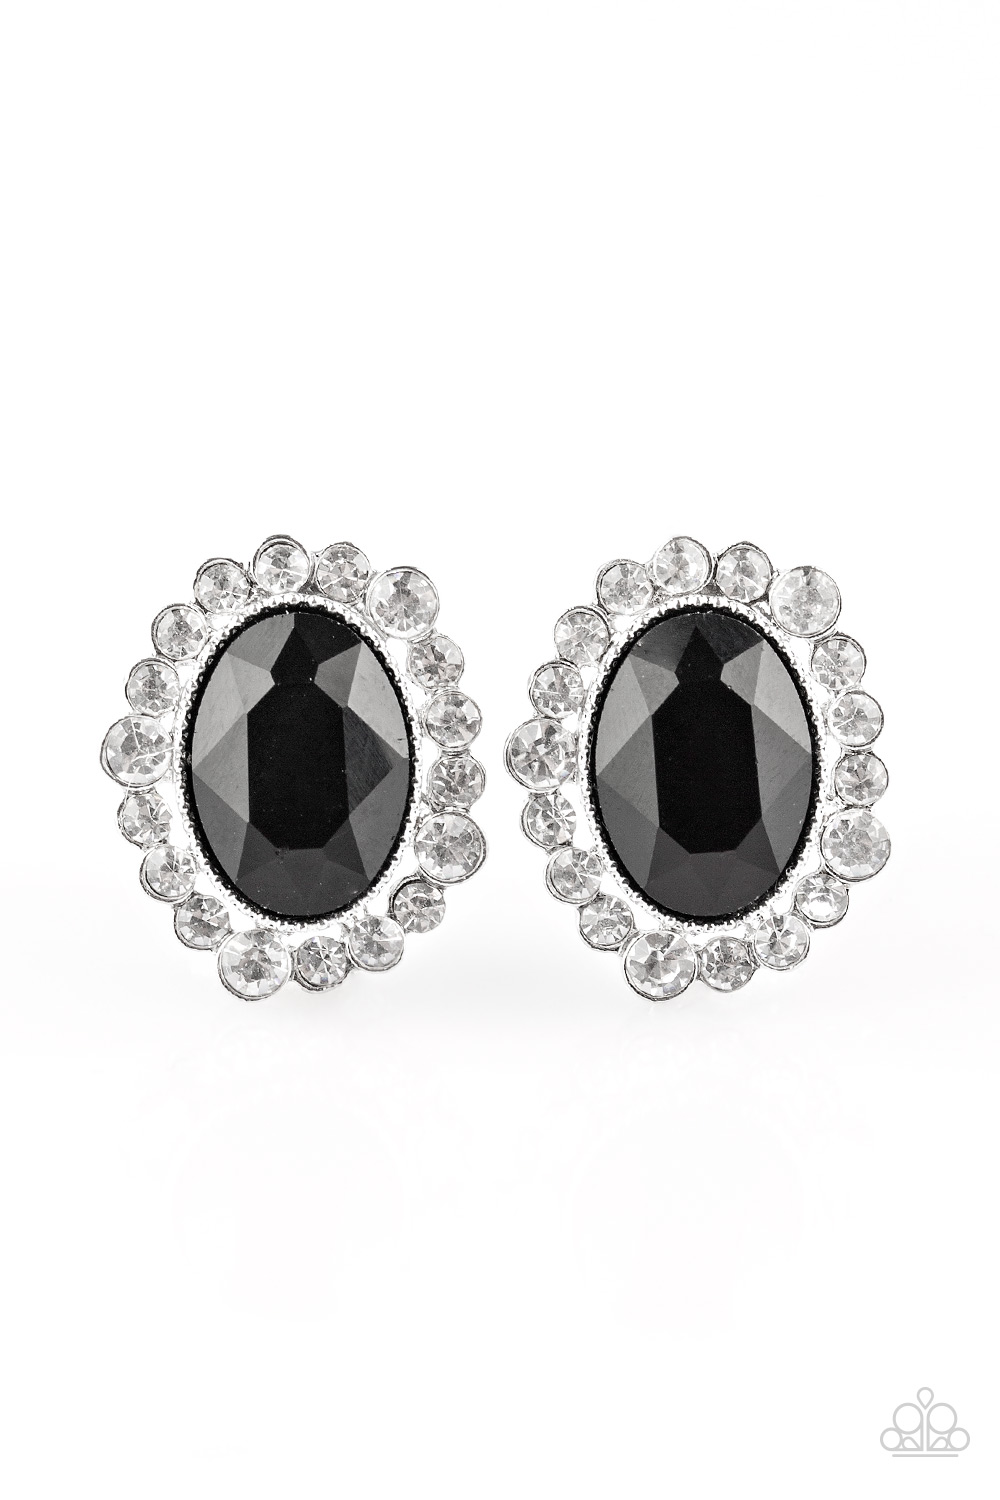 Paparazzi Accessories:  Hold Court - Black Post (119)